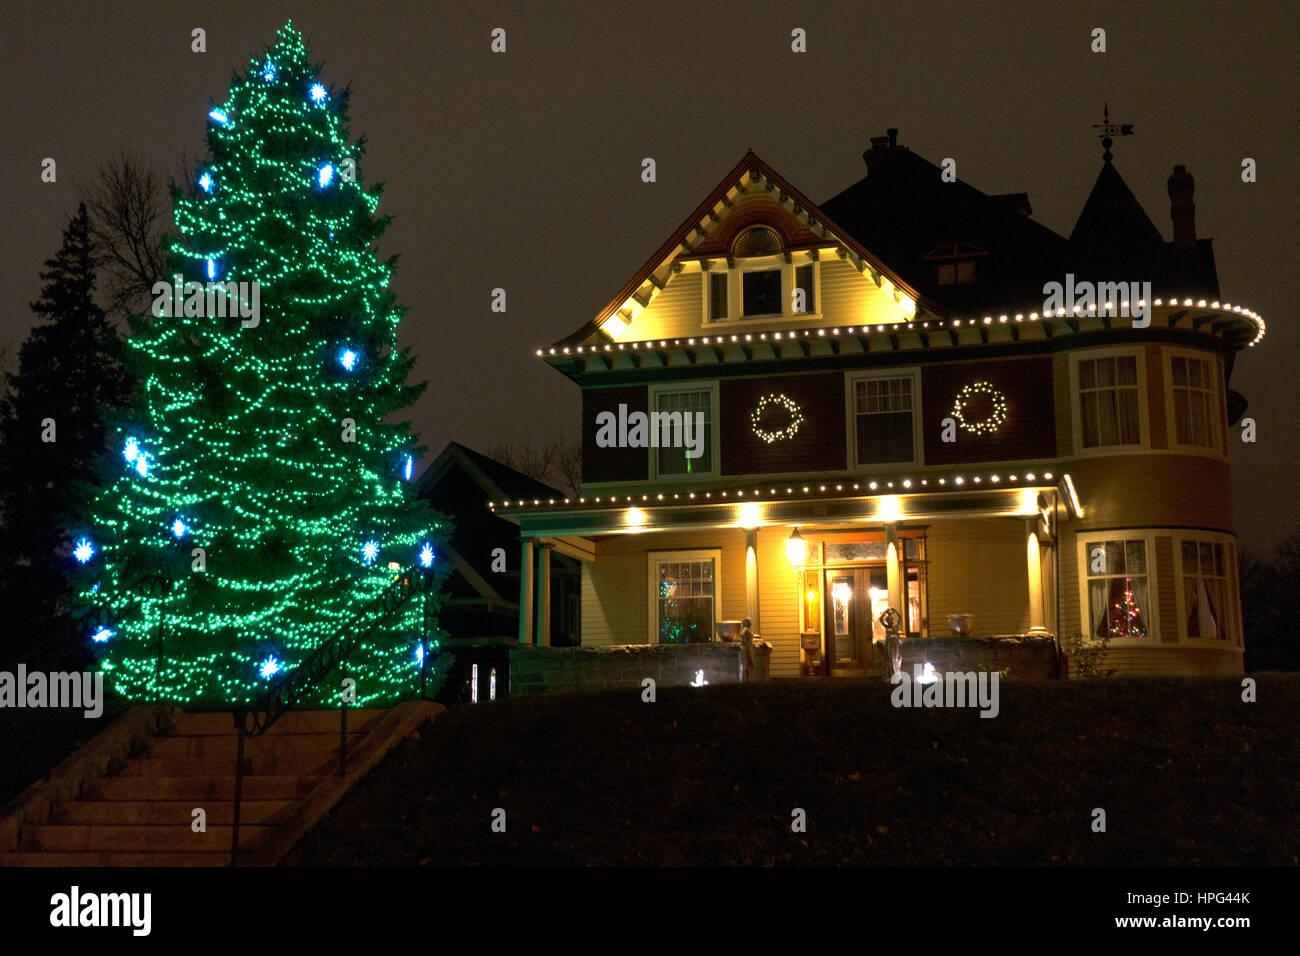 Christmas Tree Decorated With Blue And Green Lights Very Tall Next